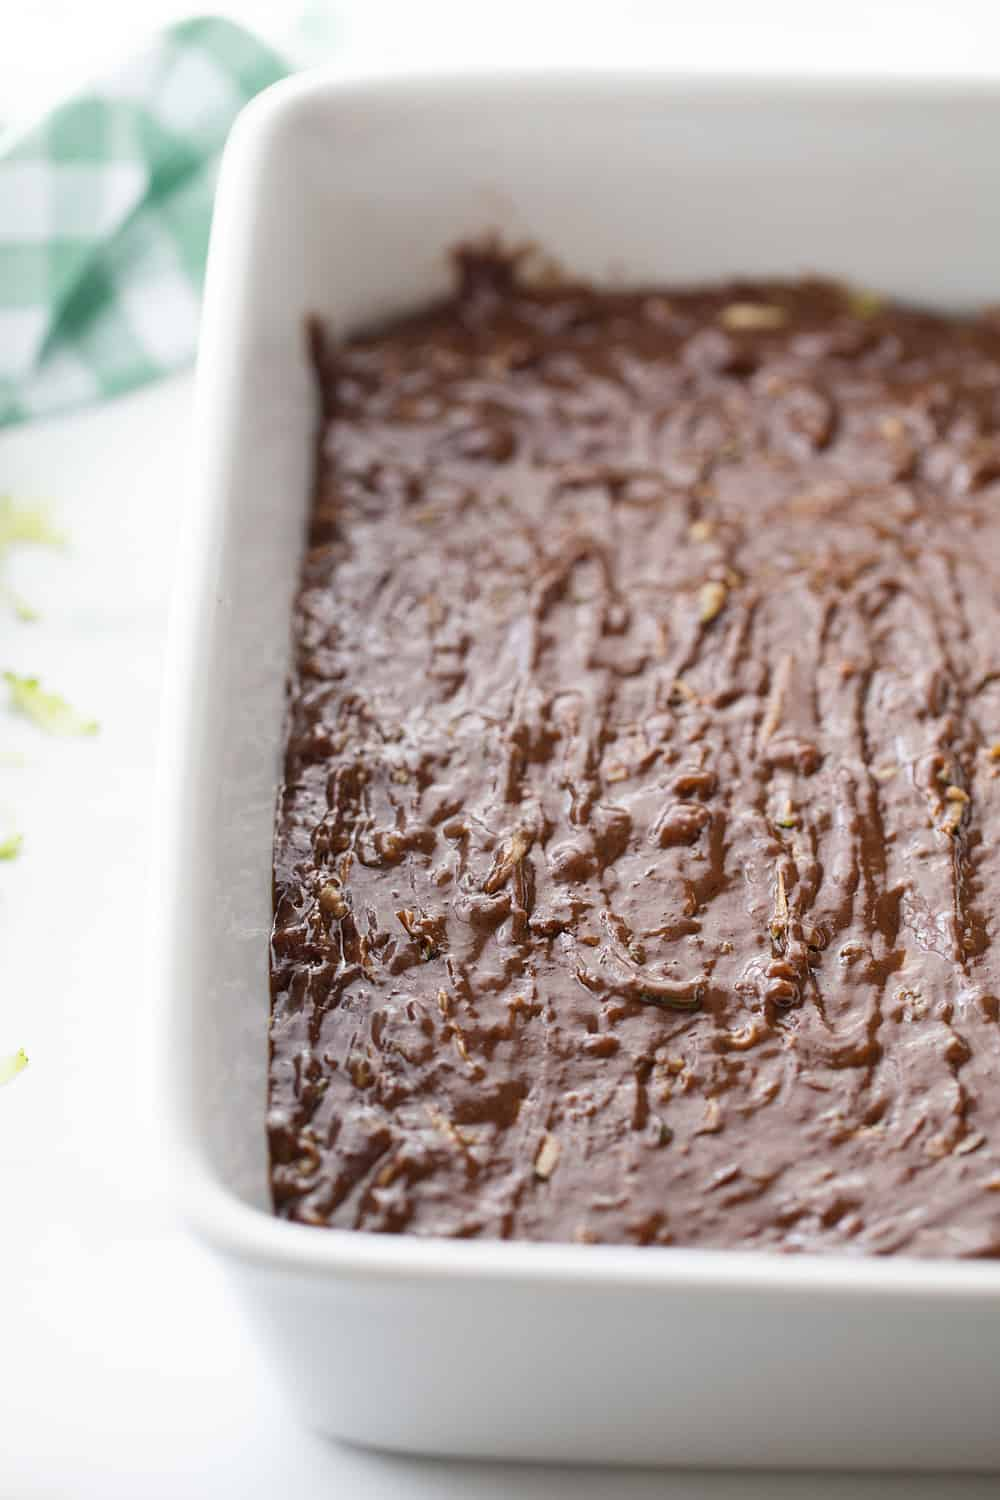 Frosted Zucchini Brownies - Frosted zucchini brownies feature a decadent chocolate flavor and rich, creamy frosting. And guess what? You can't taste zucchini in this brownie recipe! #halfscratched #brownies #brownie #recipe #baking #chocolate #zucchini #dessert #sweets